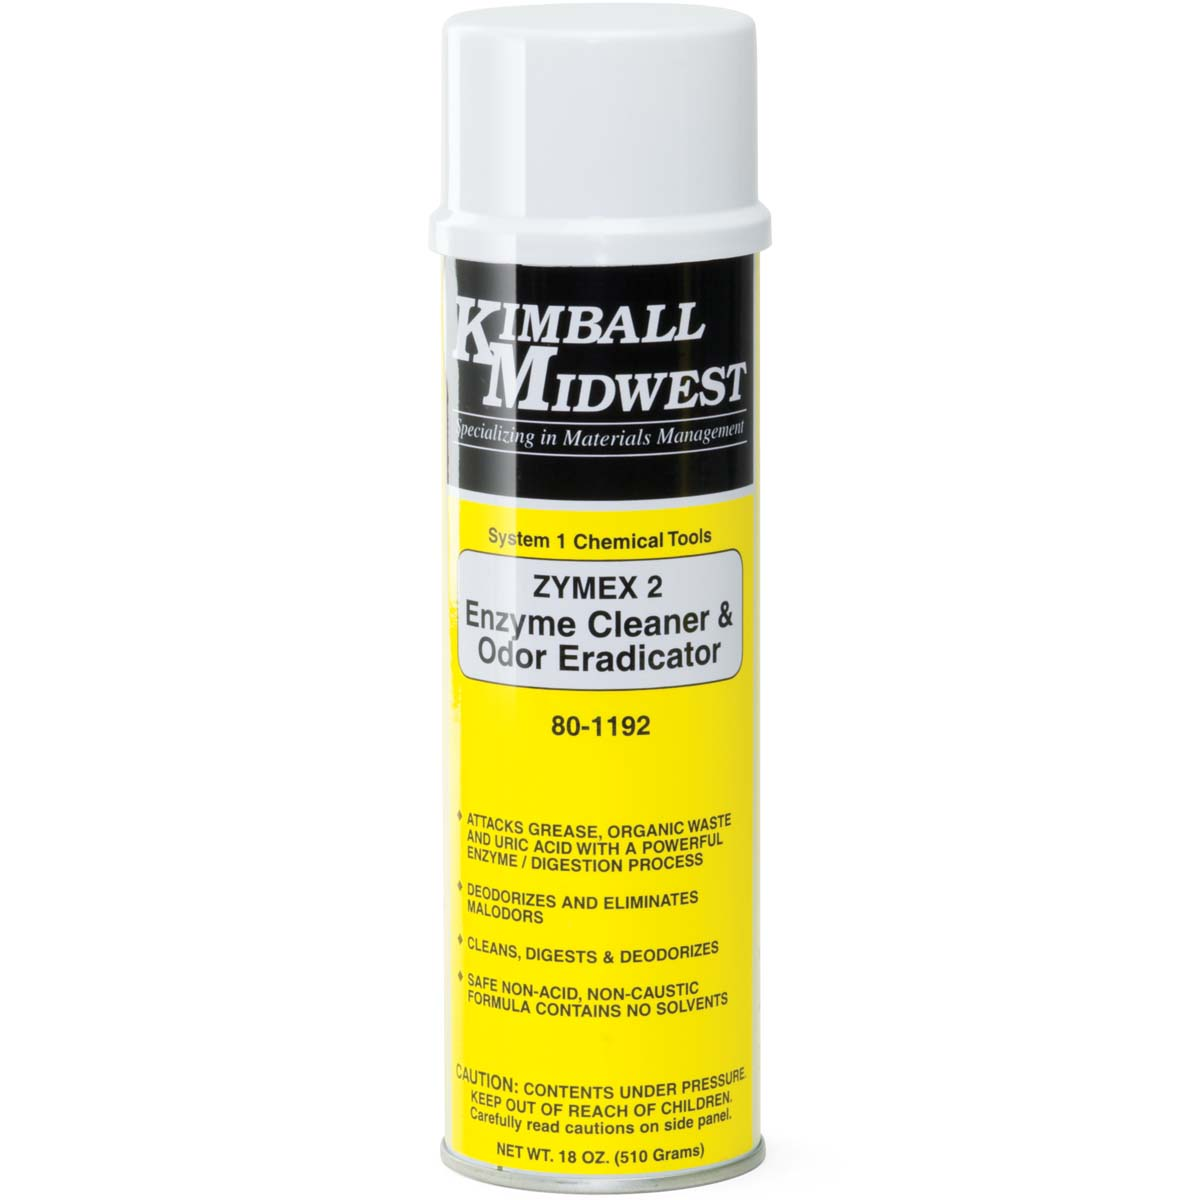 Zymex 2 Enzyme Cleaner Amp Odor Eradicator Kimball Midwest